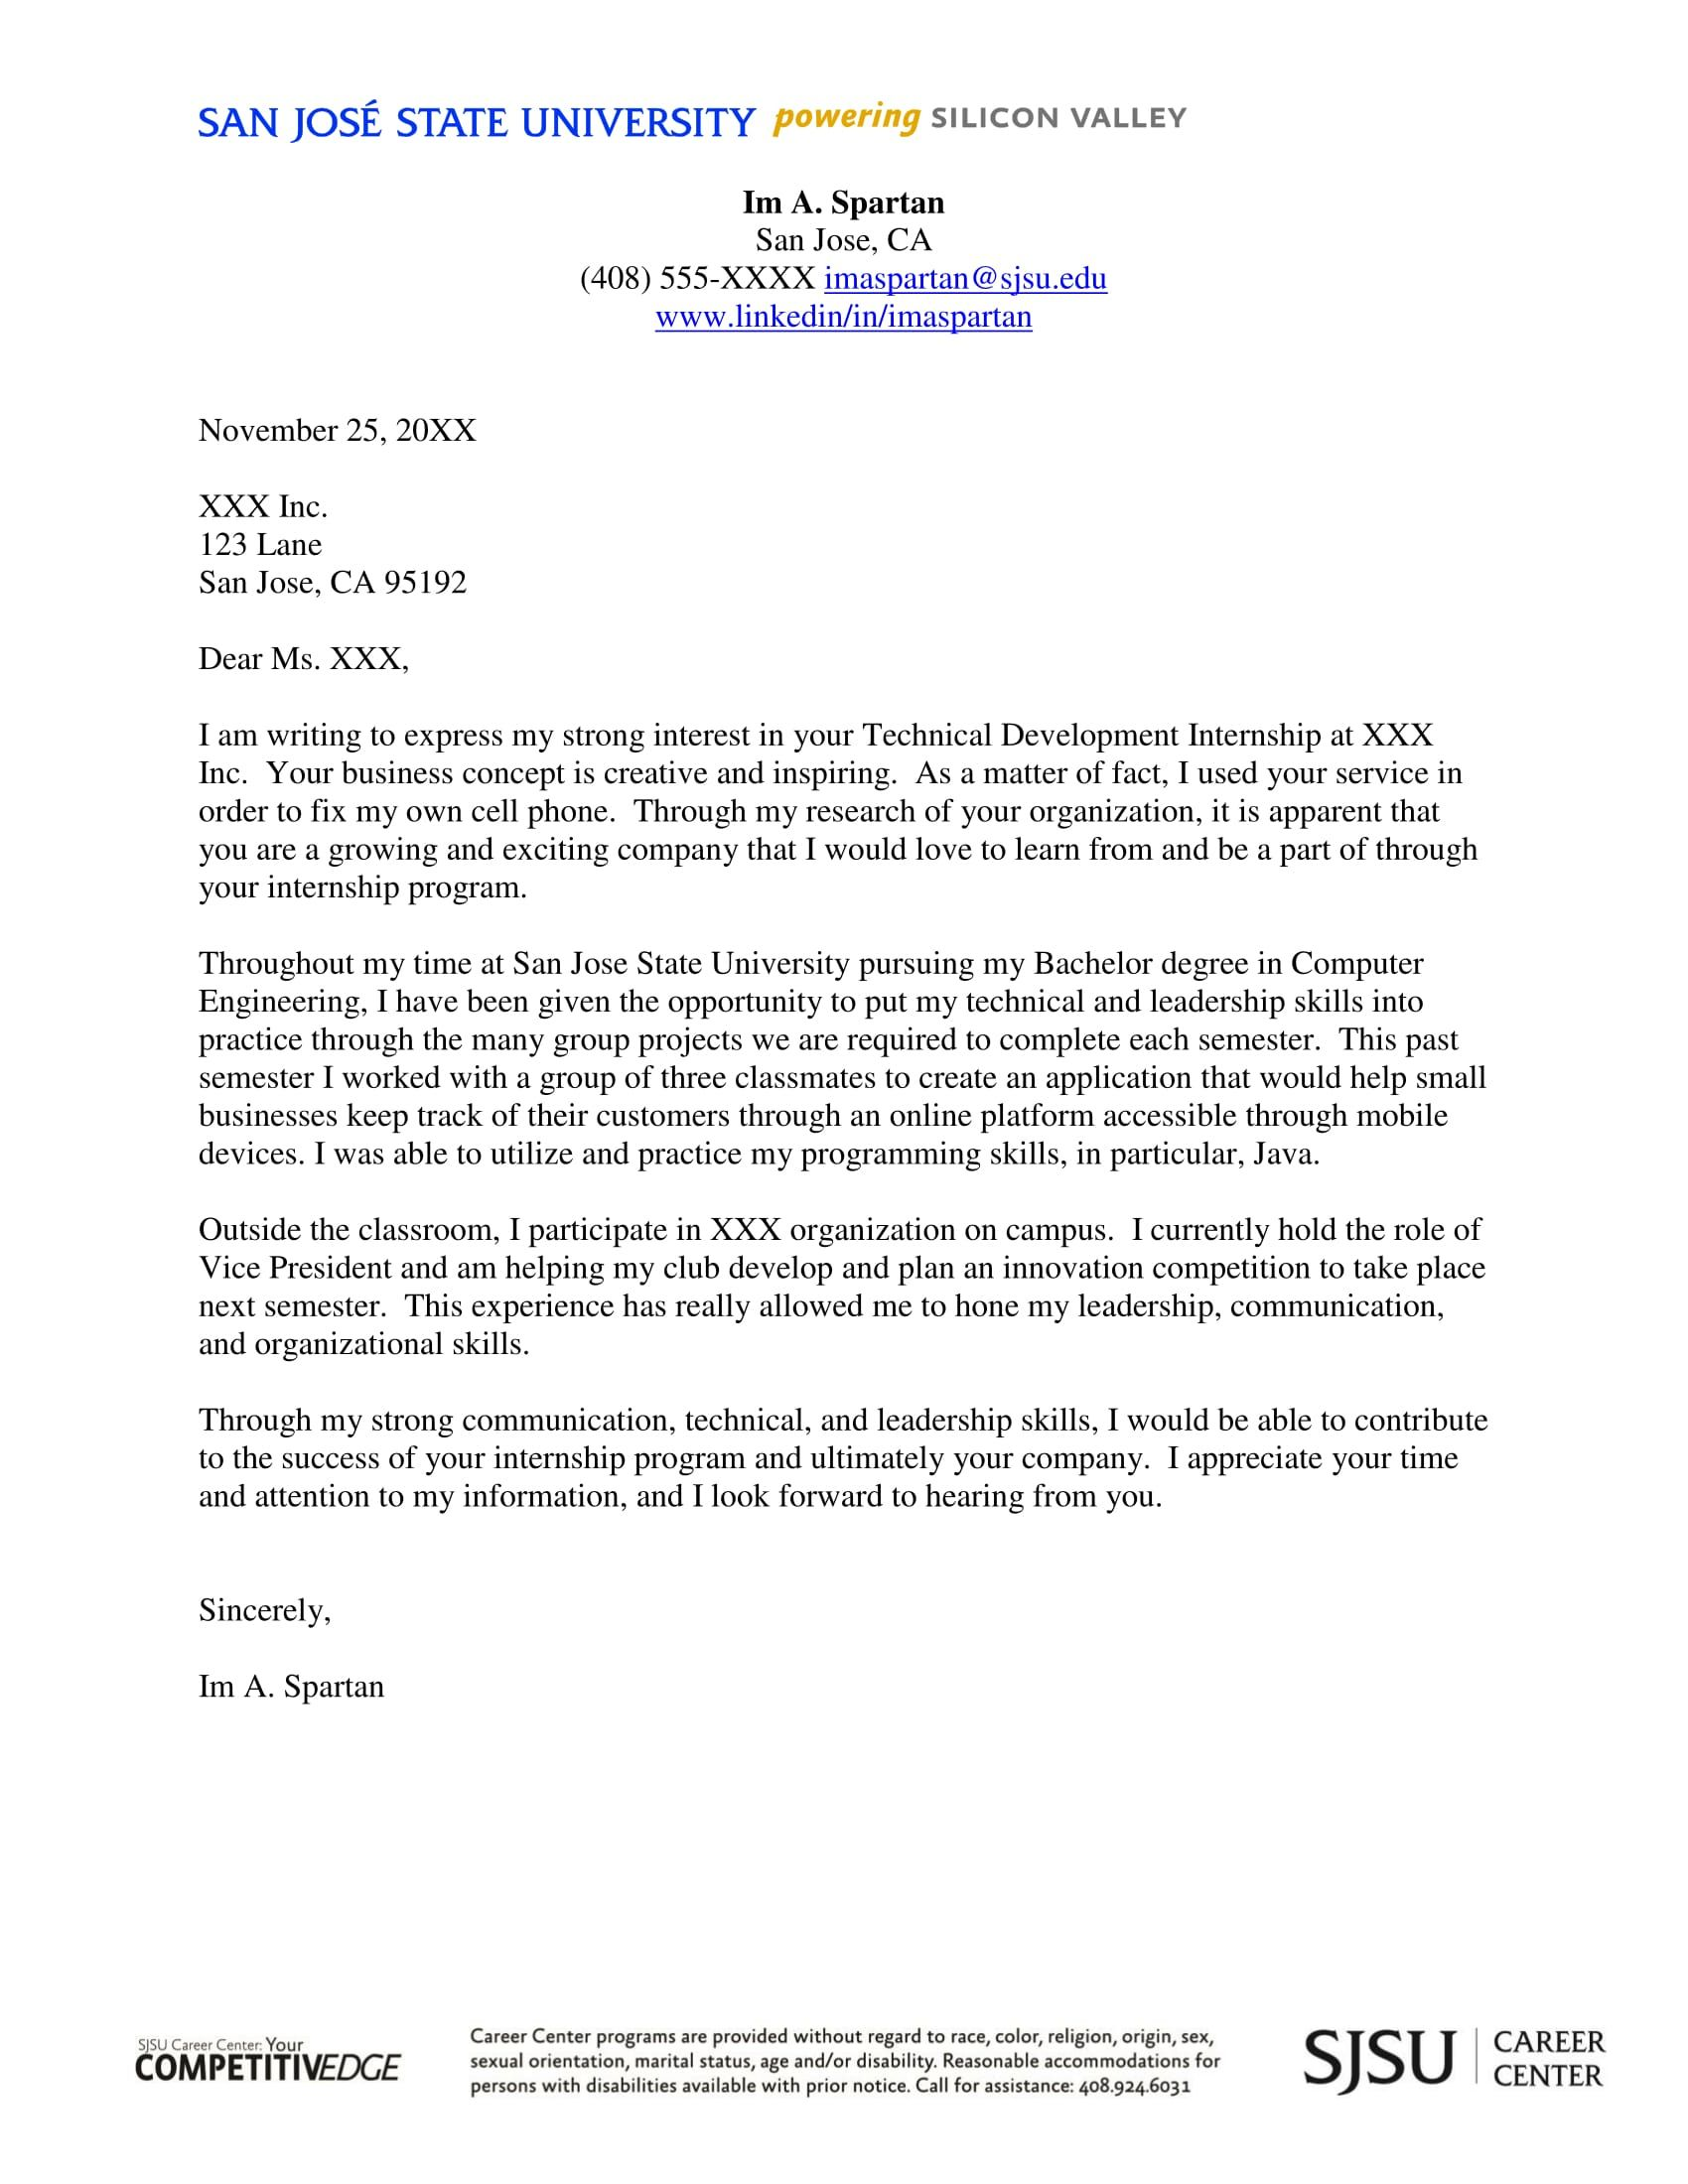 Business Development Cover Letter 30 Cover Letter Examples For Internship Cover Letter Examples